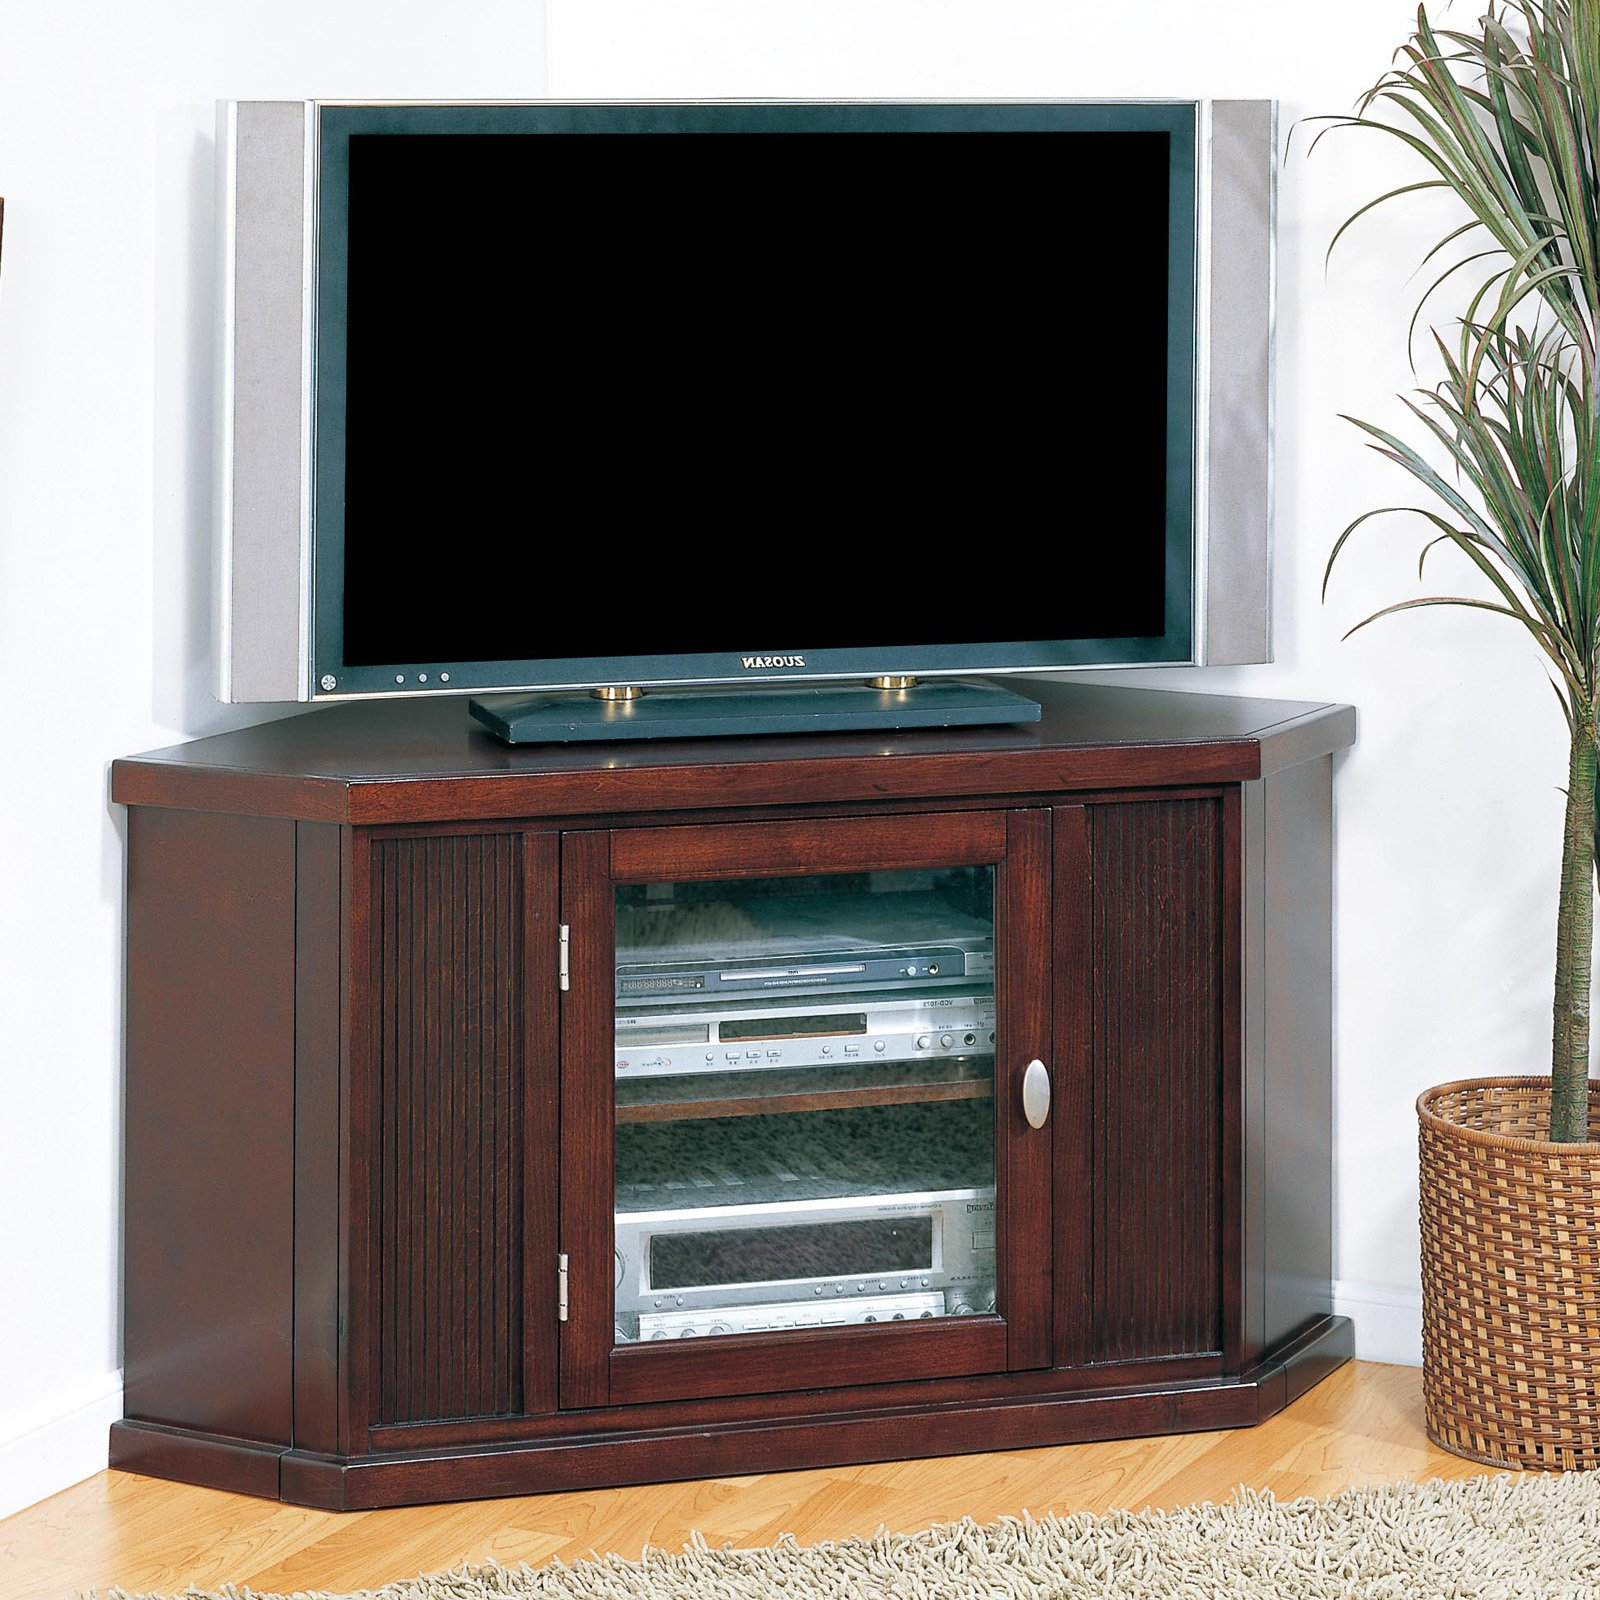 """Lorraine Tv Stands For Tvs Up To 60"""" For Recent Leick Home Riley Holliday 46"""" Corner Tv Stand For Tv's Up (View 4 of 25)"""